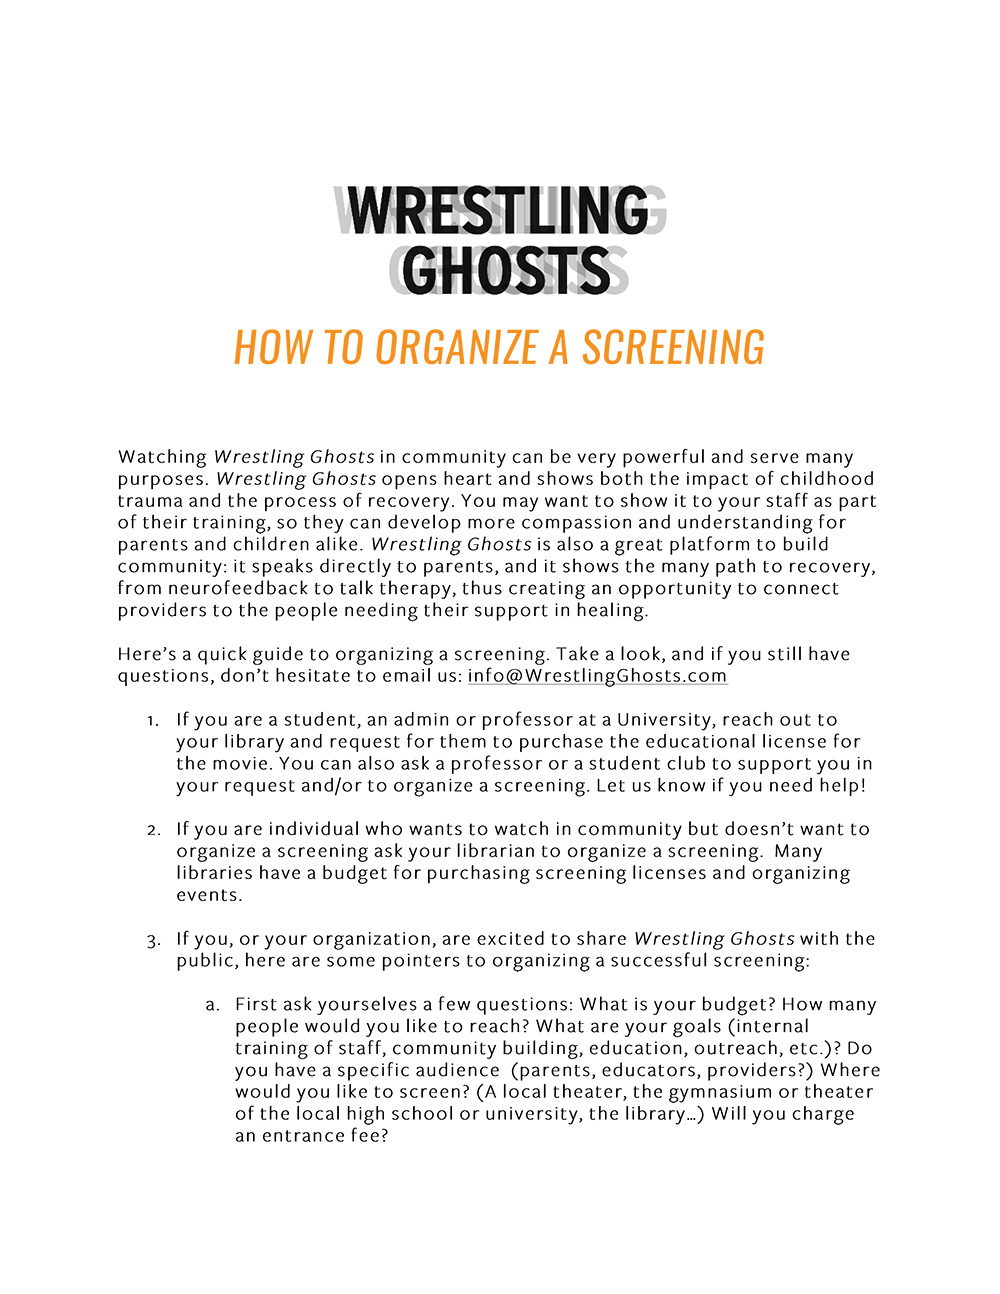 Wrestling Ghosts How To Organize a Screening  (366KB PDF)